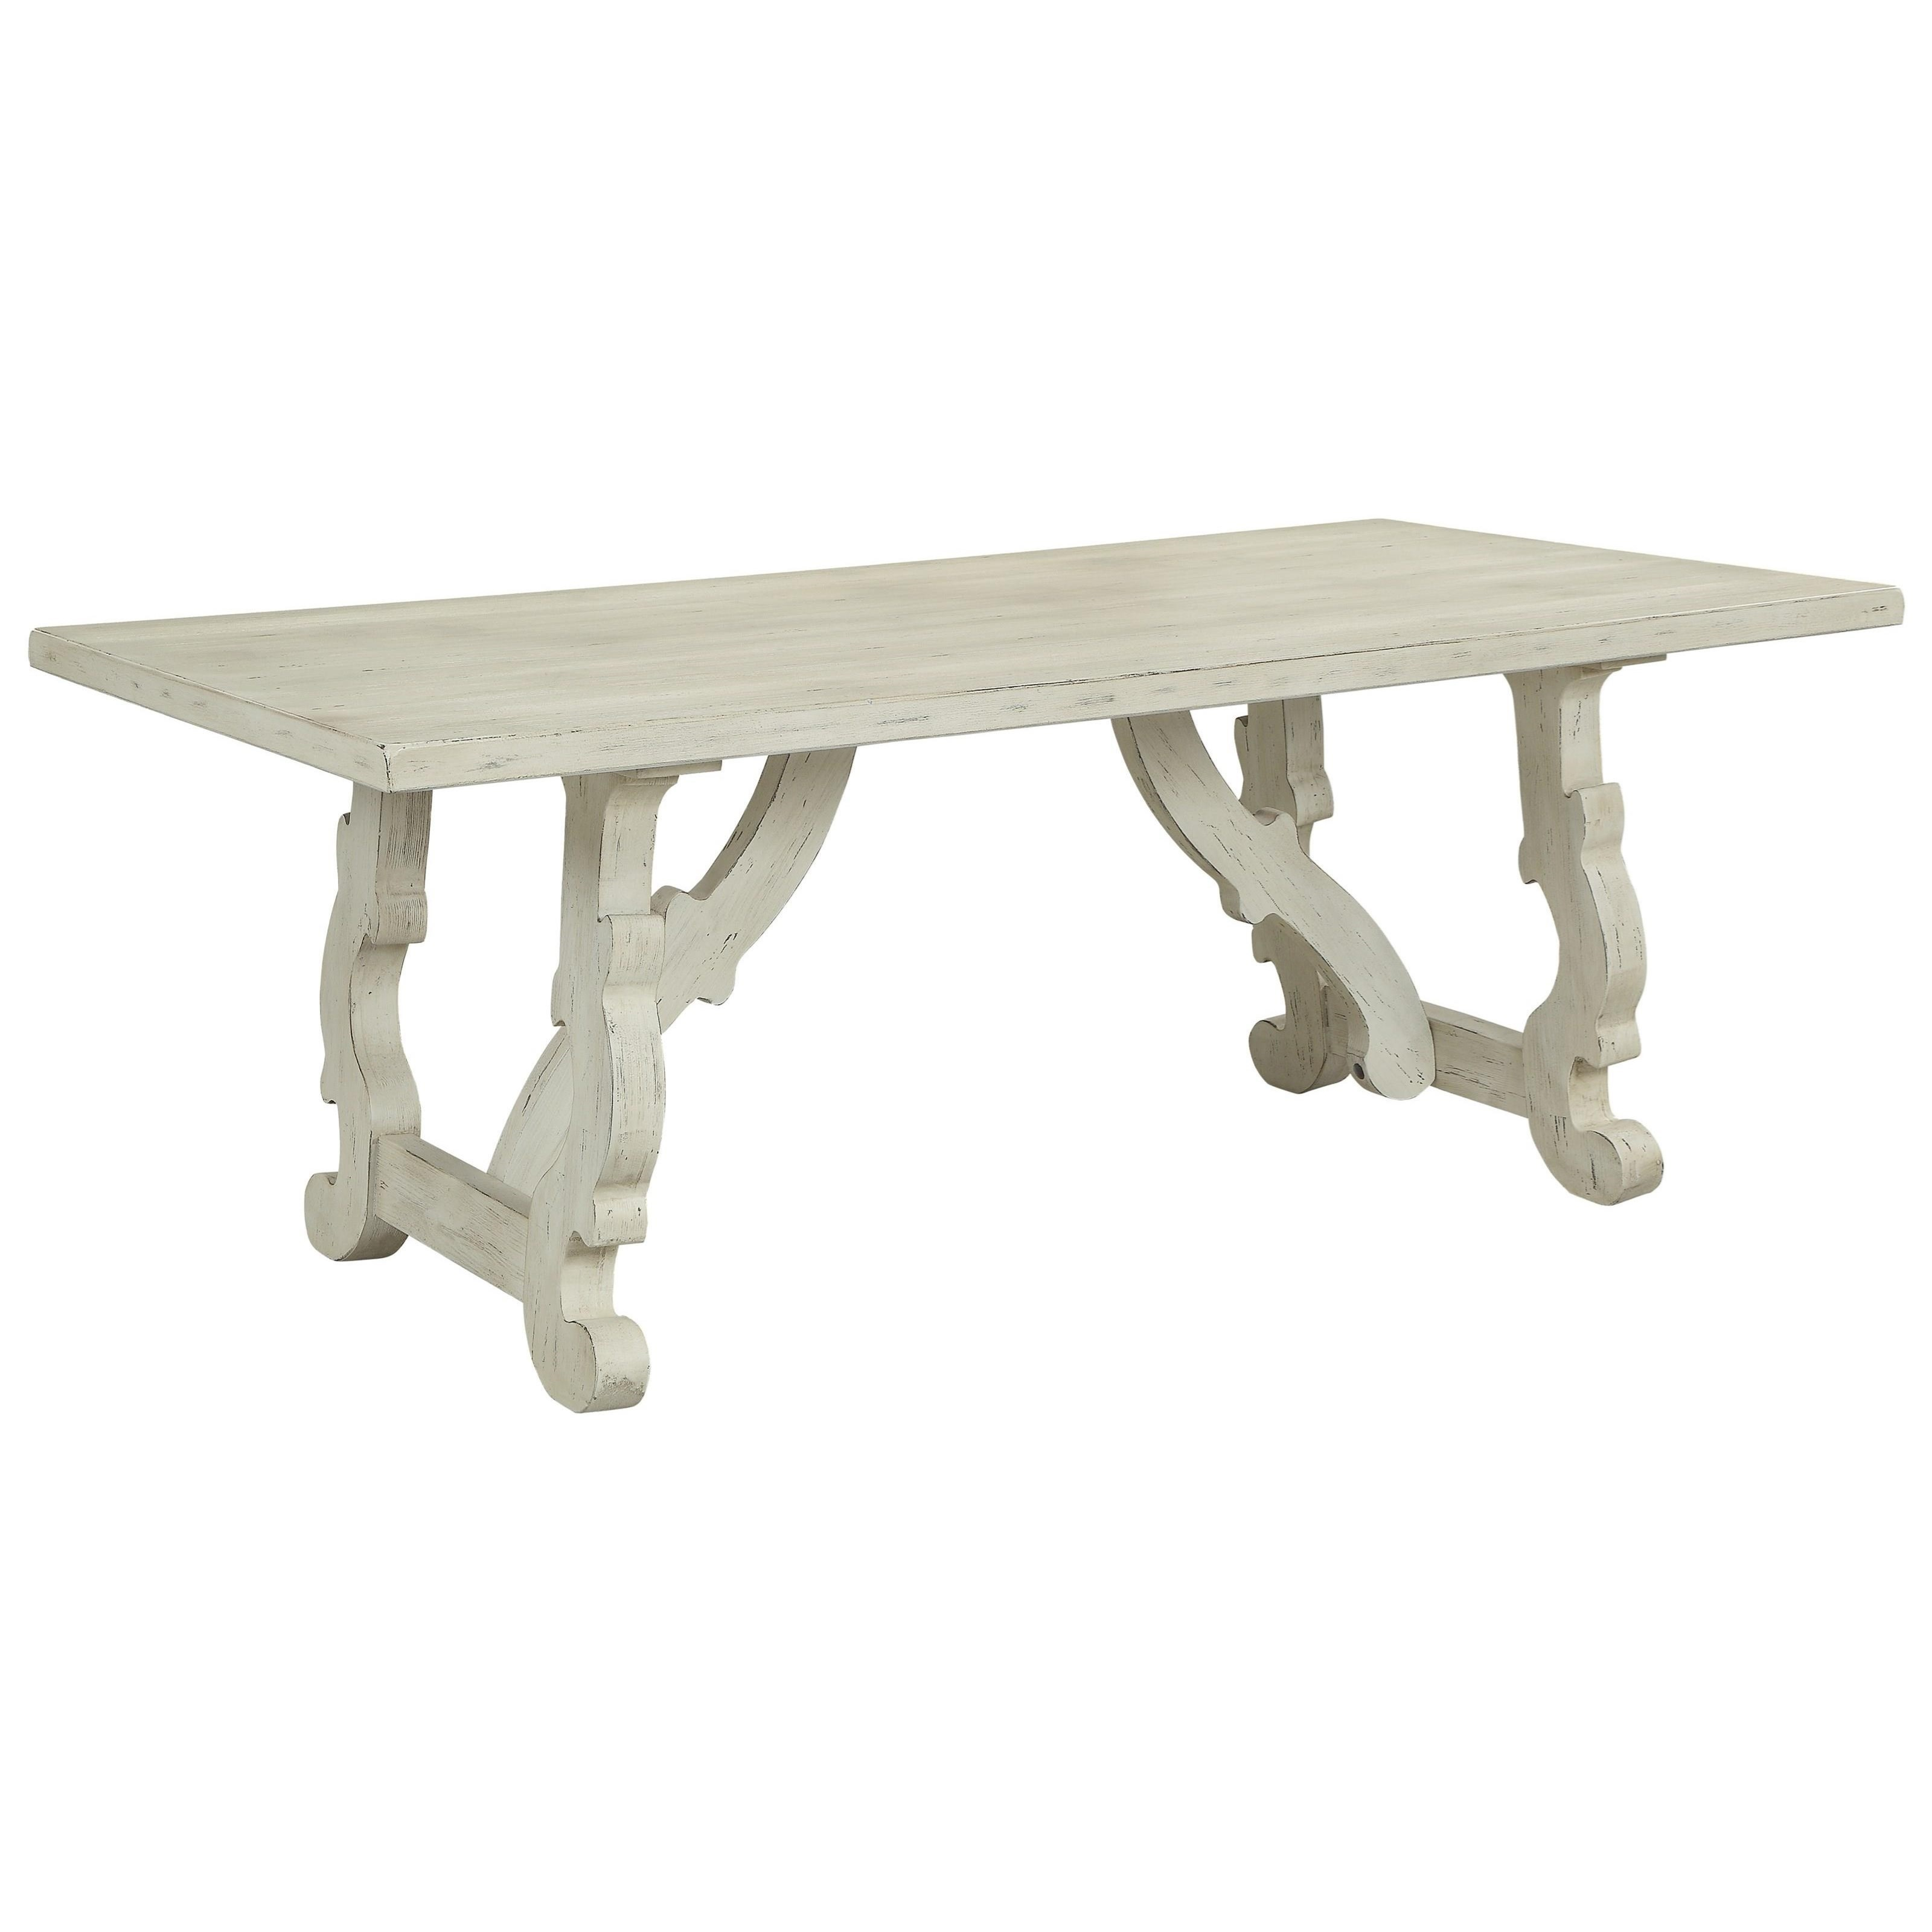 Good Coast To Coast Imports Orchard Park Orchard Park Dining Table | Olindeu0027s  Furniture | Dining Tables